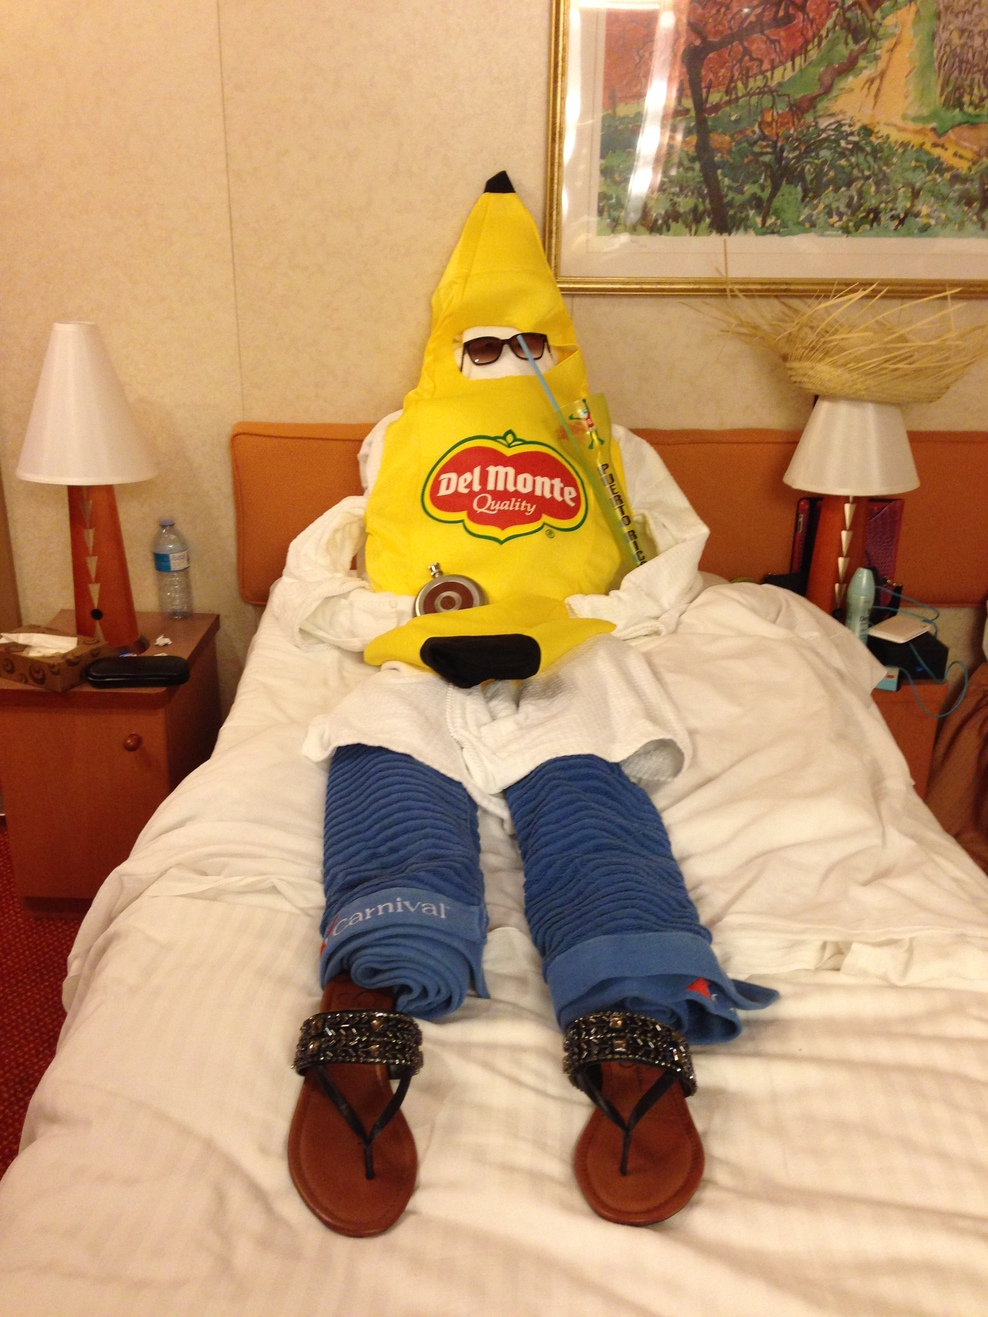 Towel human banana